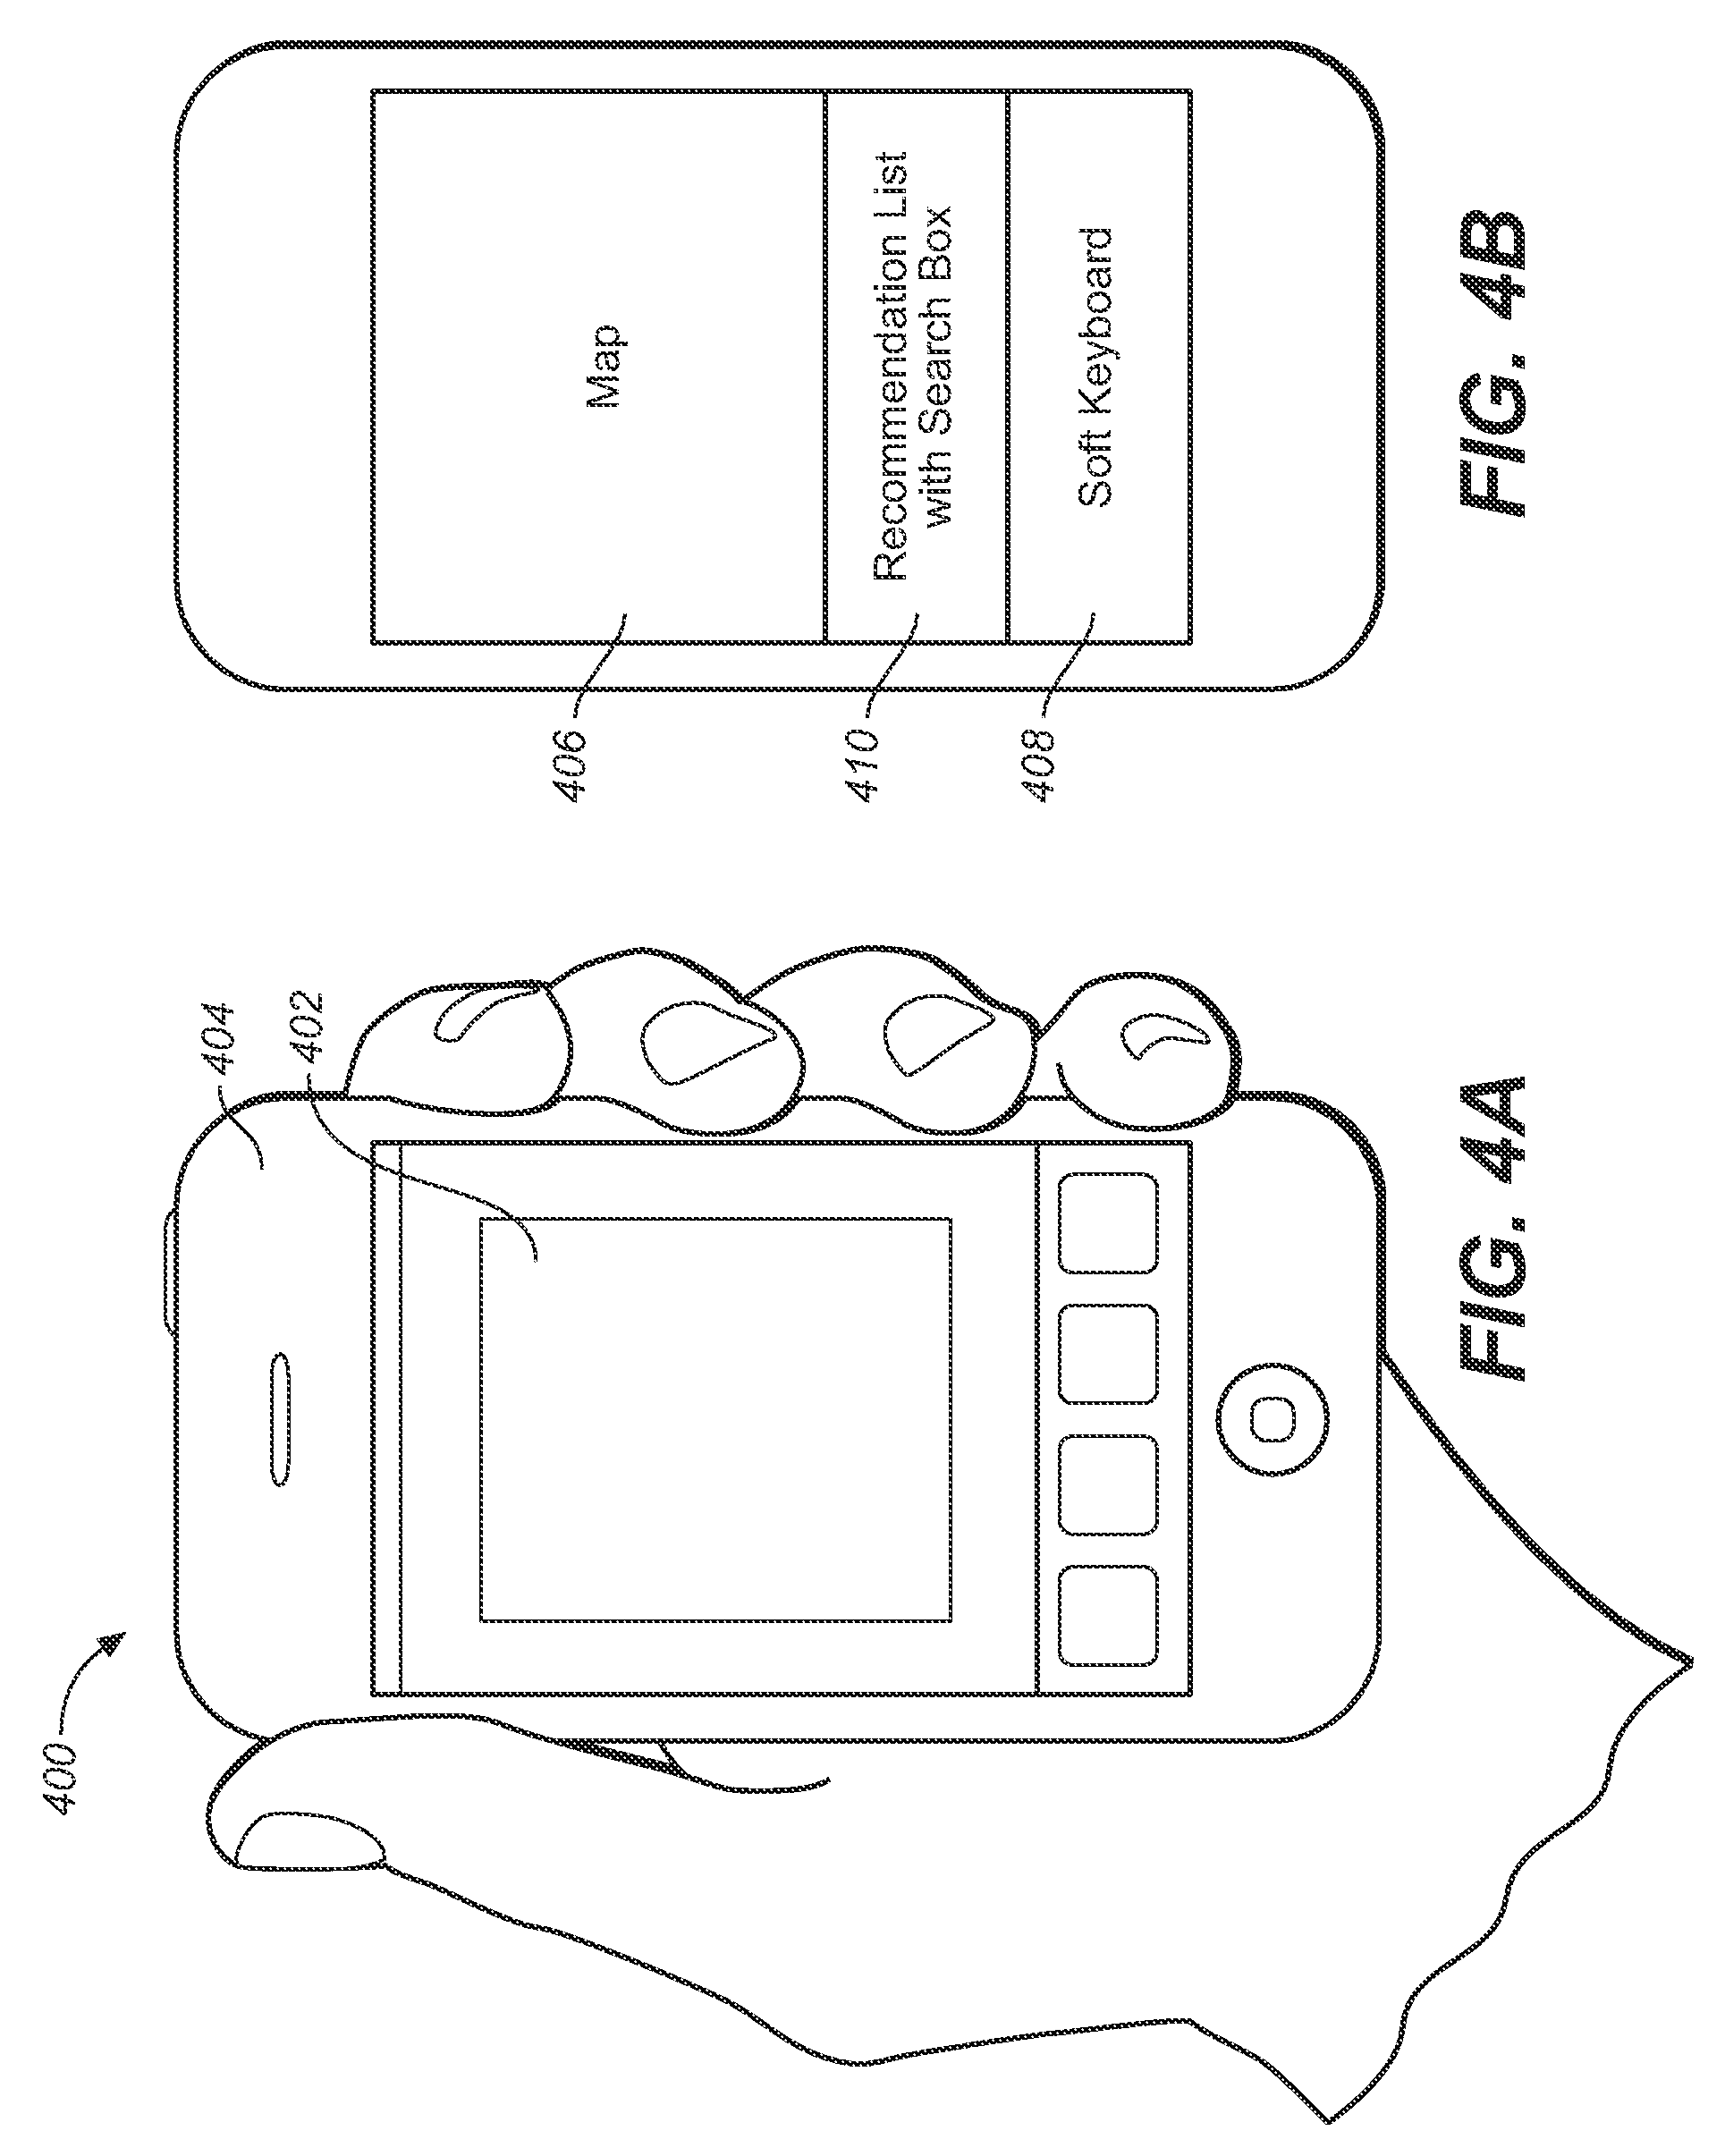 Patent US Local Map Chat Google Patents - Map us keyboard